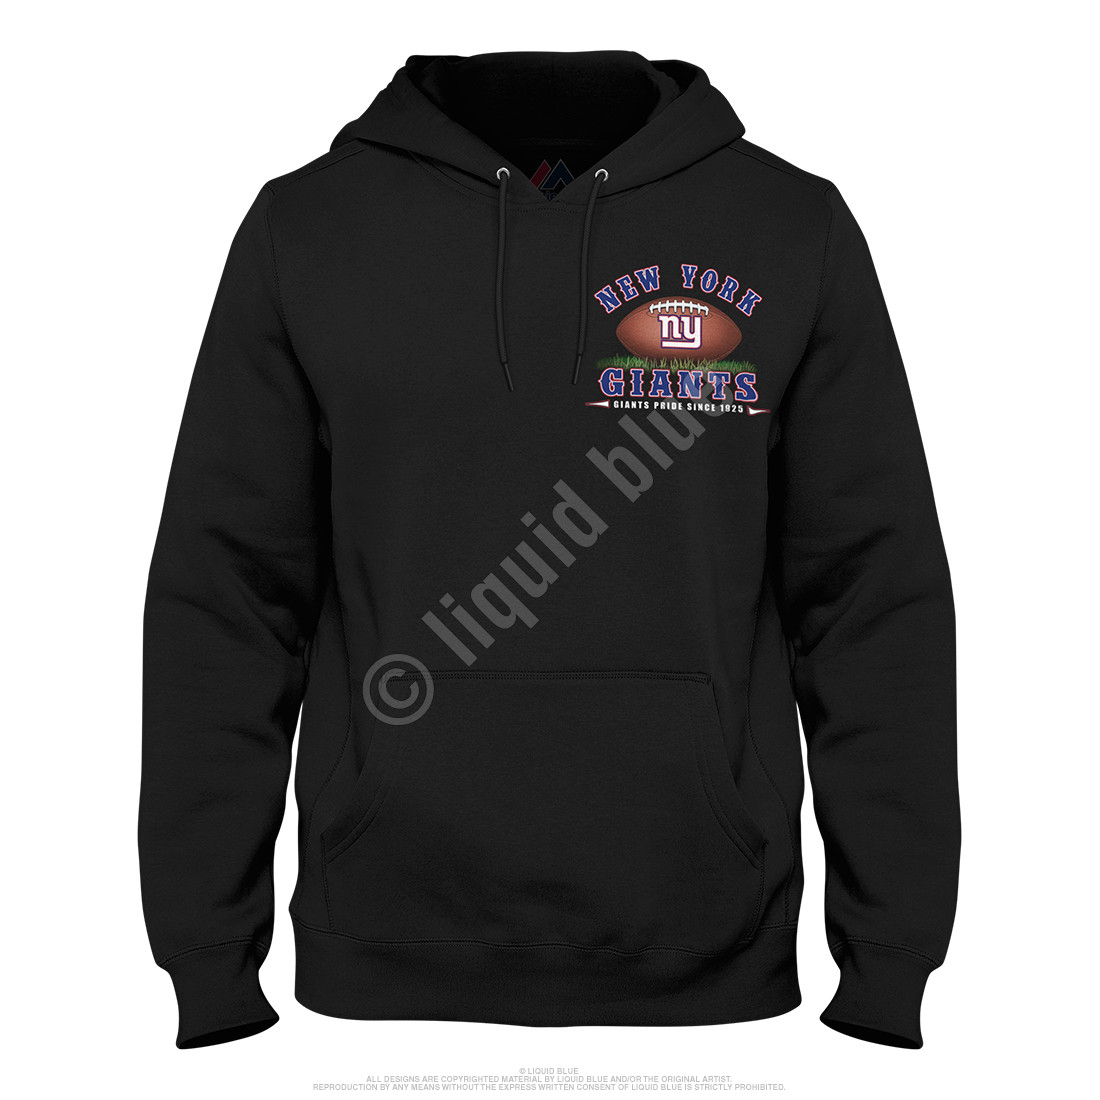 New York Giants End Zone Black Hoodie